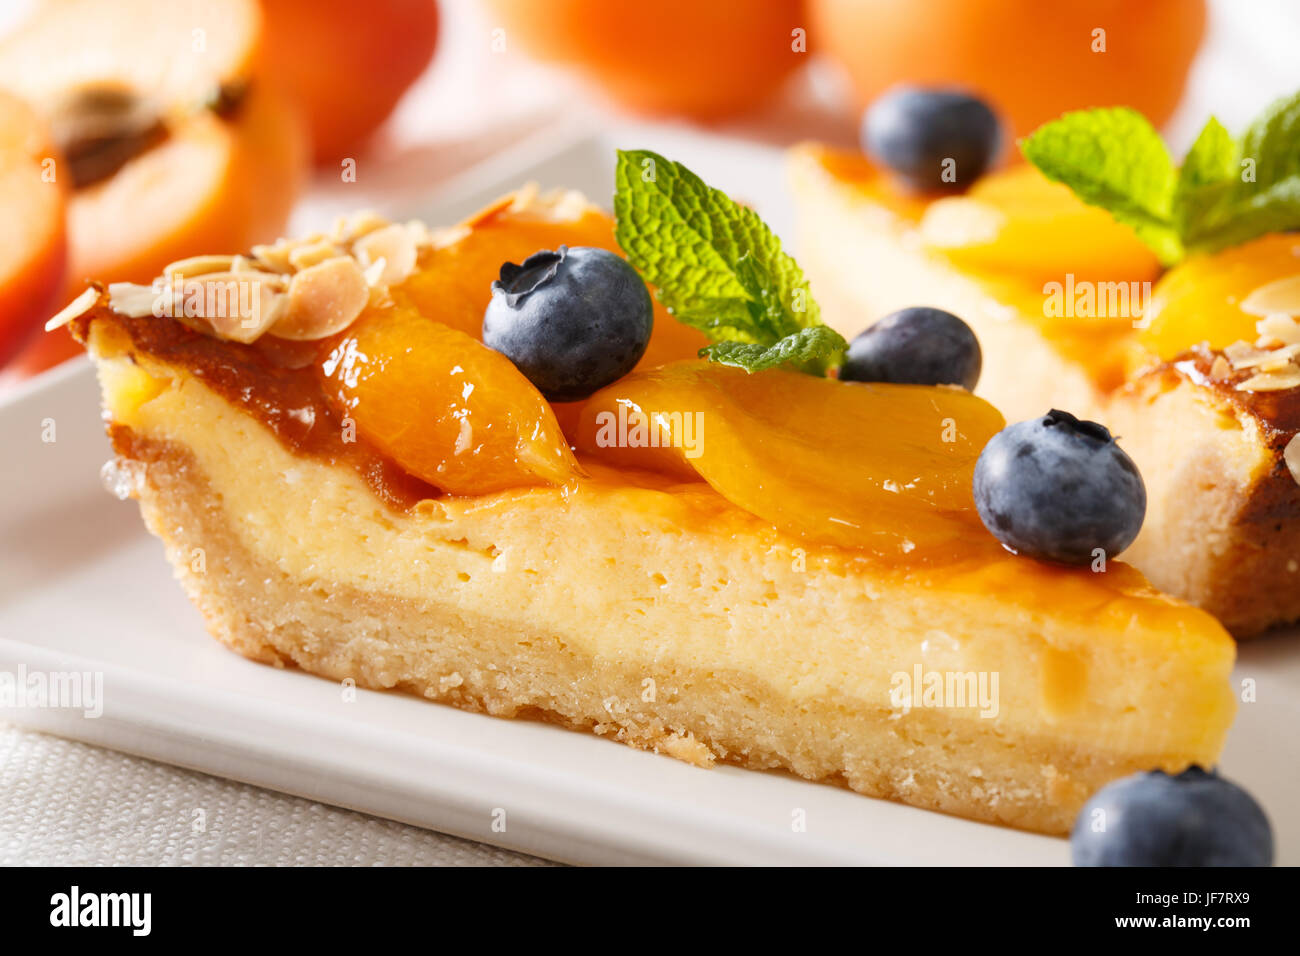 A beautiful dessert: a cheesecake with apricots, blueberries and almonds close-up on a plate. horizontal - Stock Image